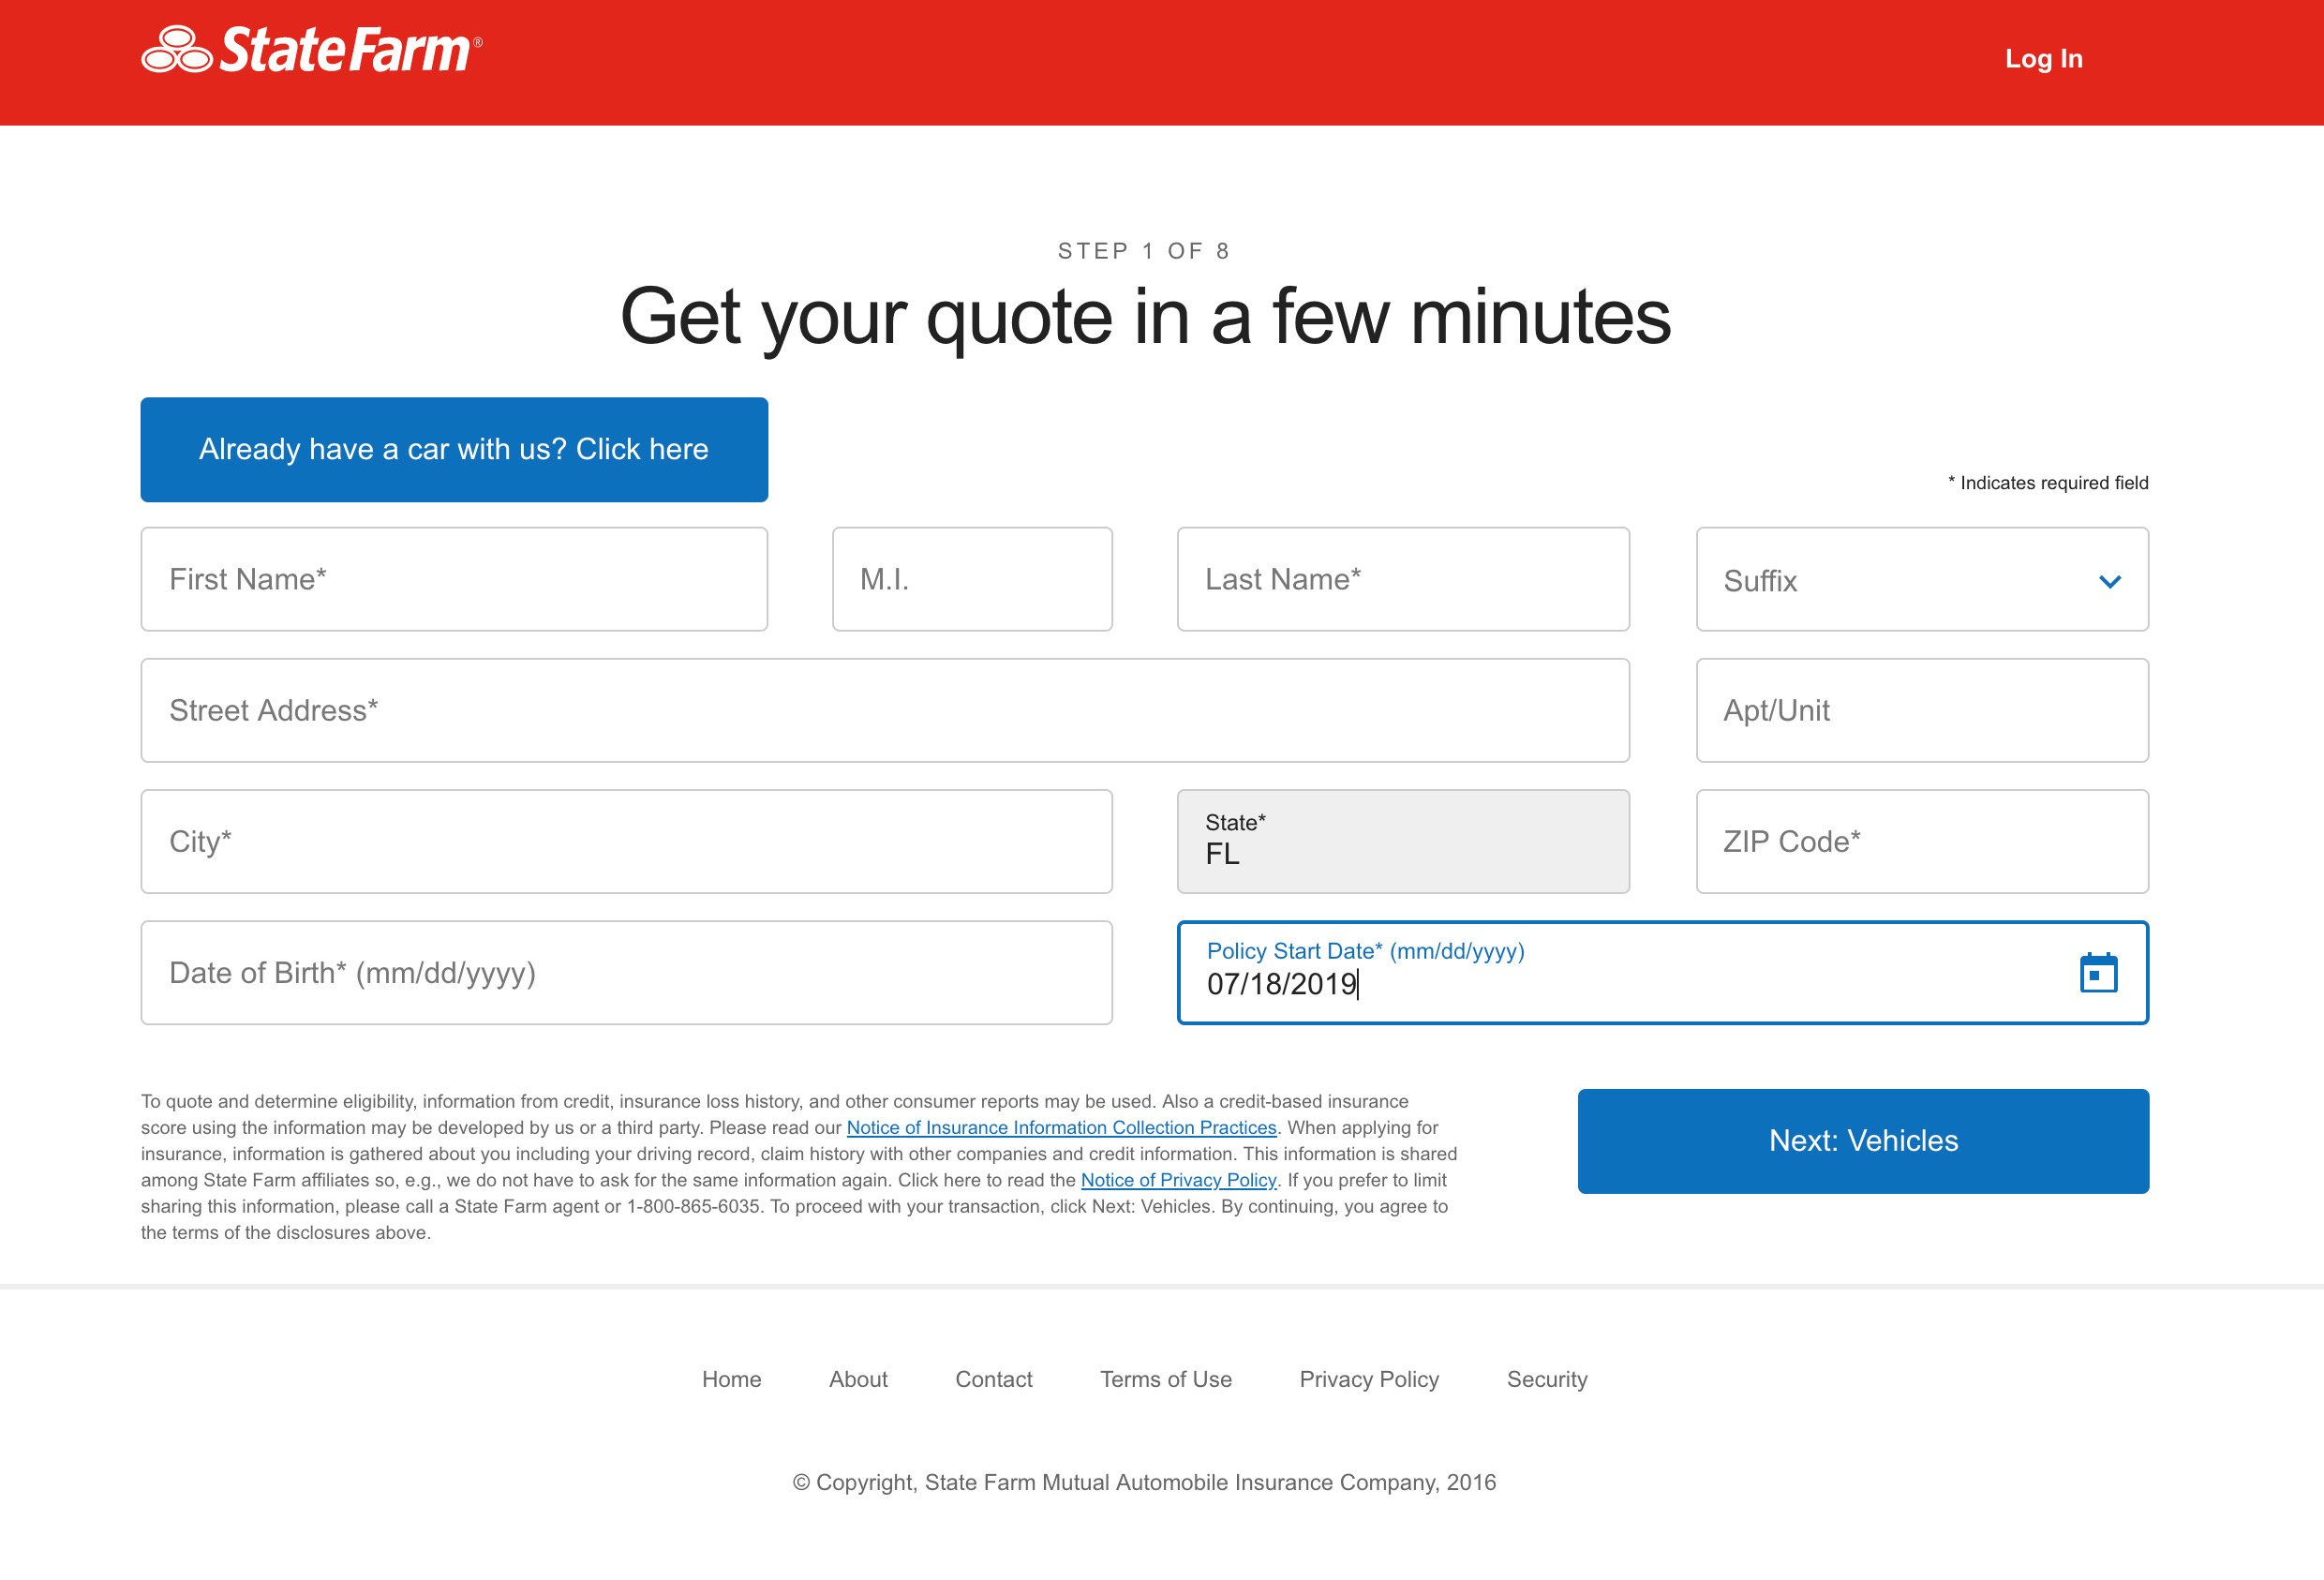 State Farm Quote How-To https://www.statefarm.com/